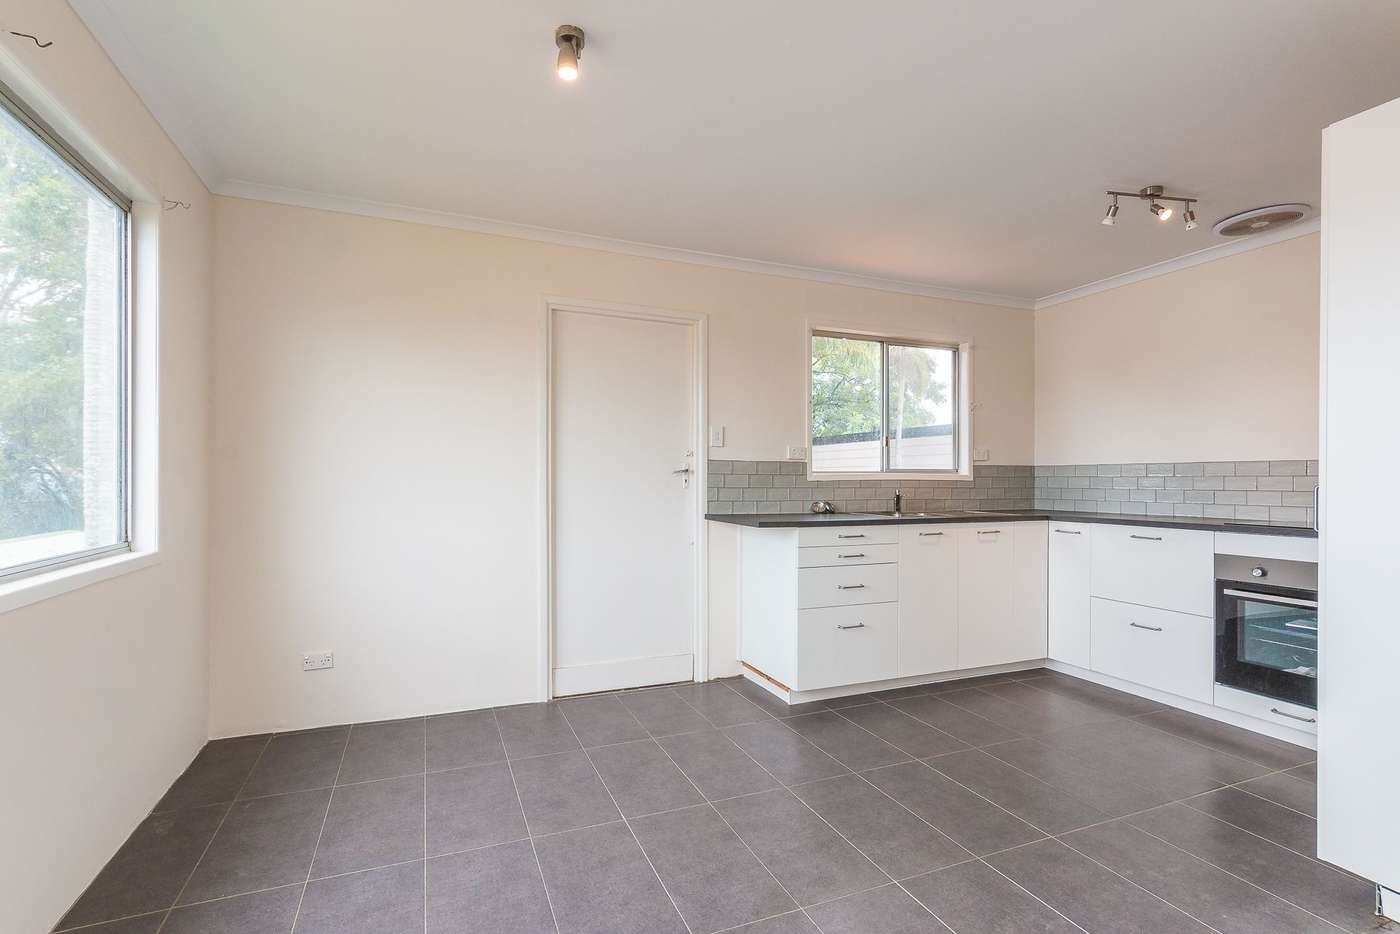 Main view of Homely house listing, 28 Mcpherson Street, Kippa-ring QLD 4021